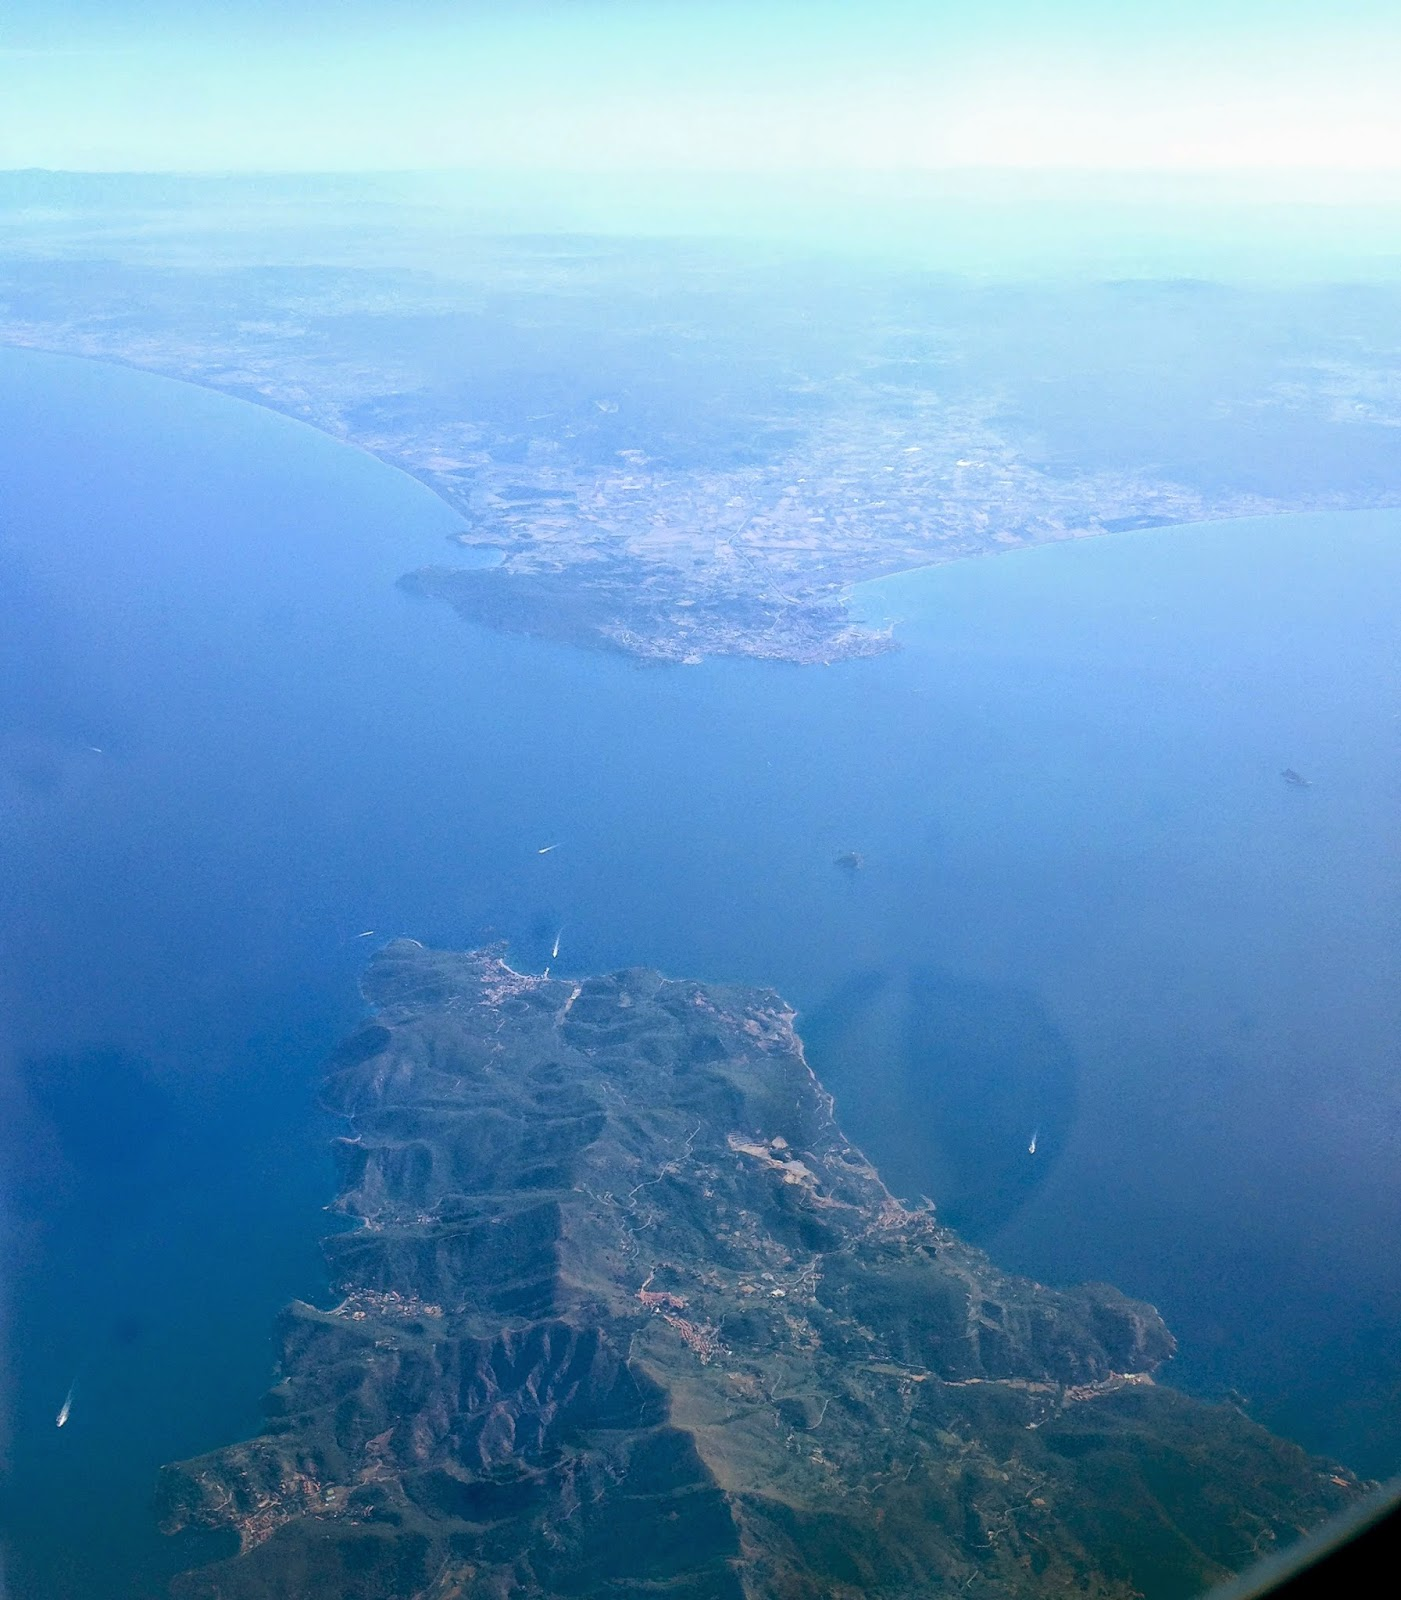 View of Italy from plane